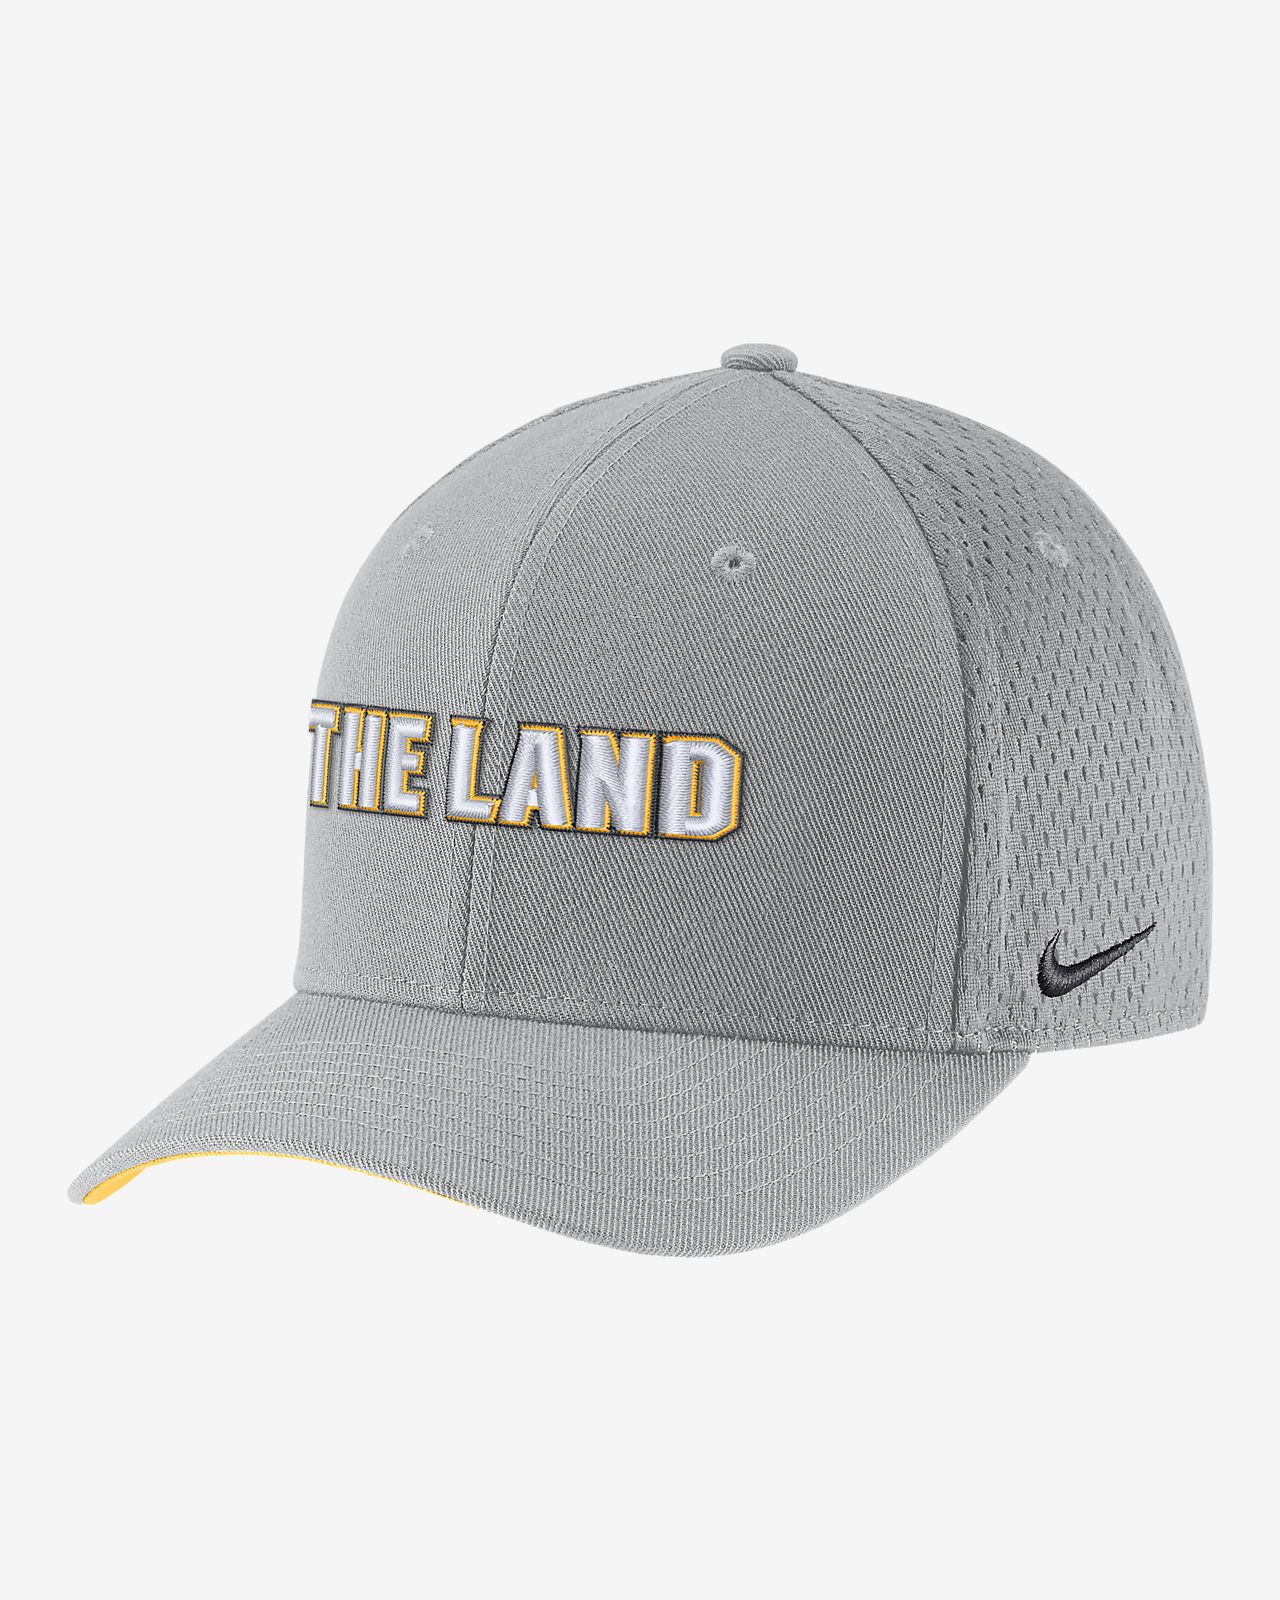 ... Cleveland Cavaliers City Edition Nike Classic99 Unisex NBA Hat